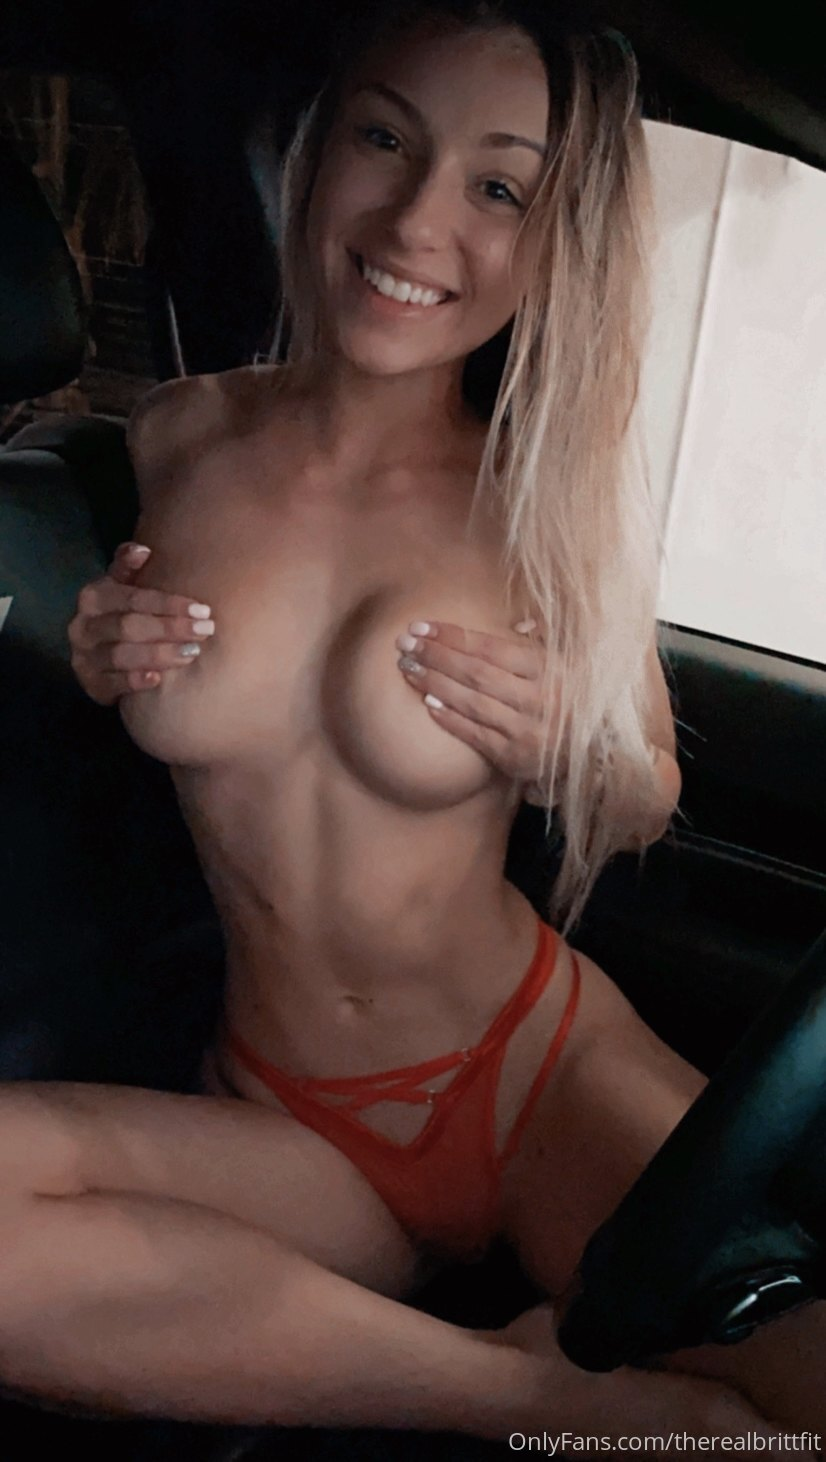 Onlyfans, Therealbrittfit, Nudes Leaked 0022